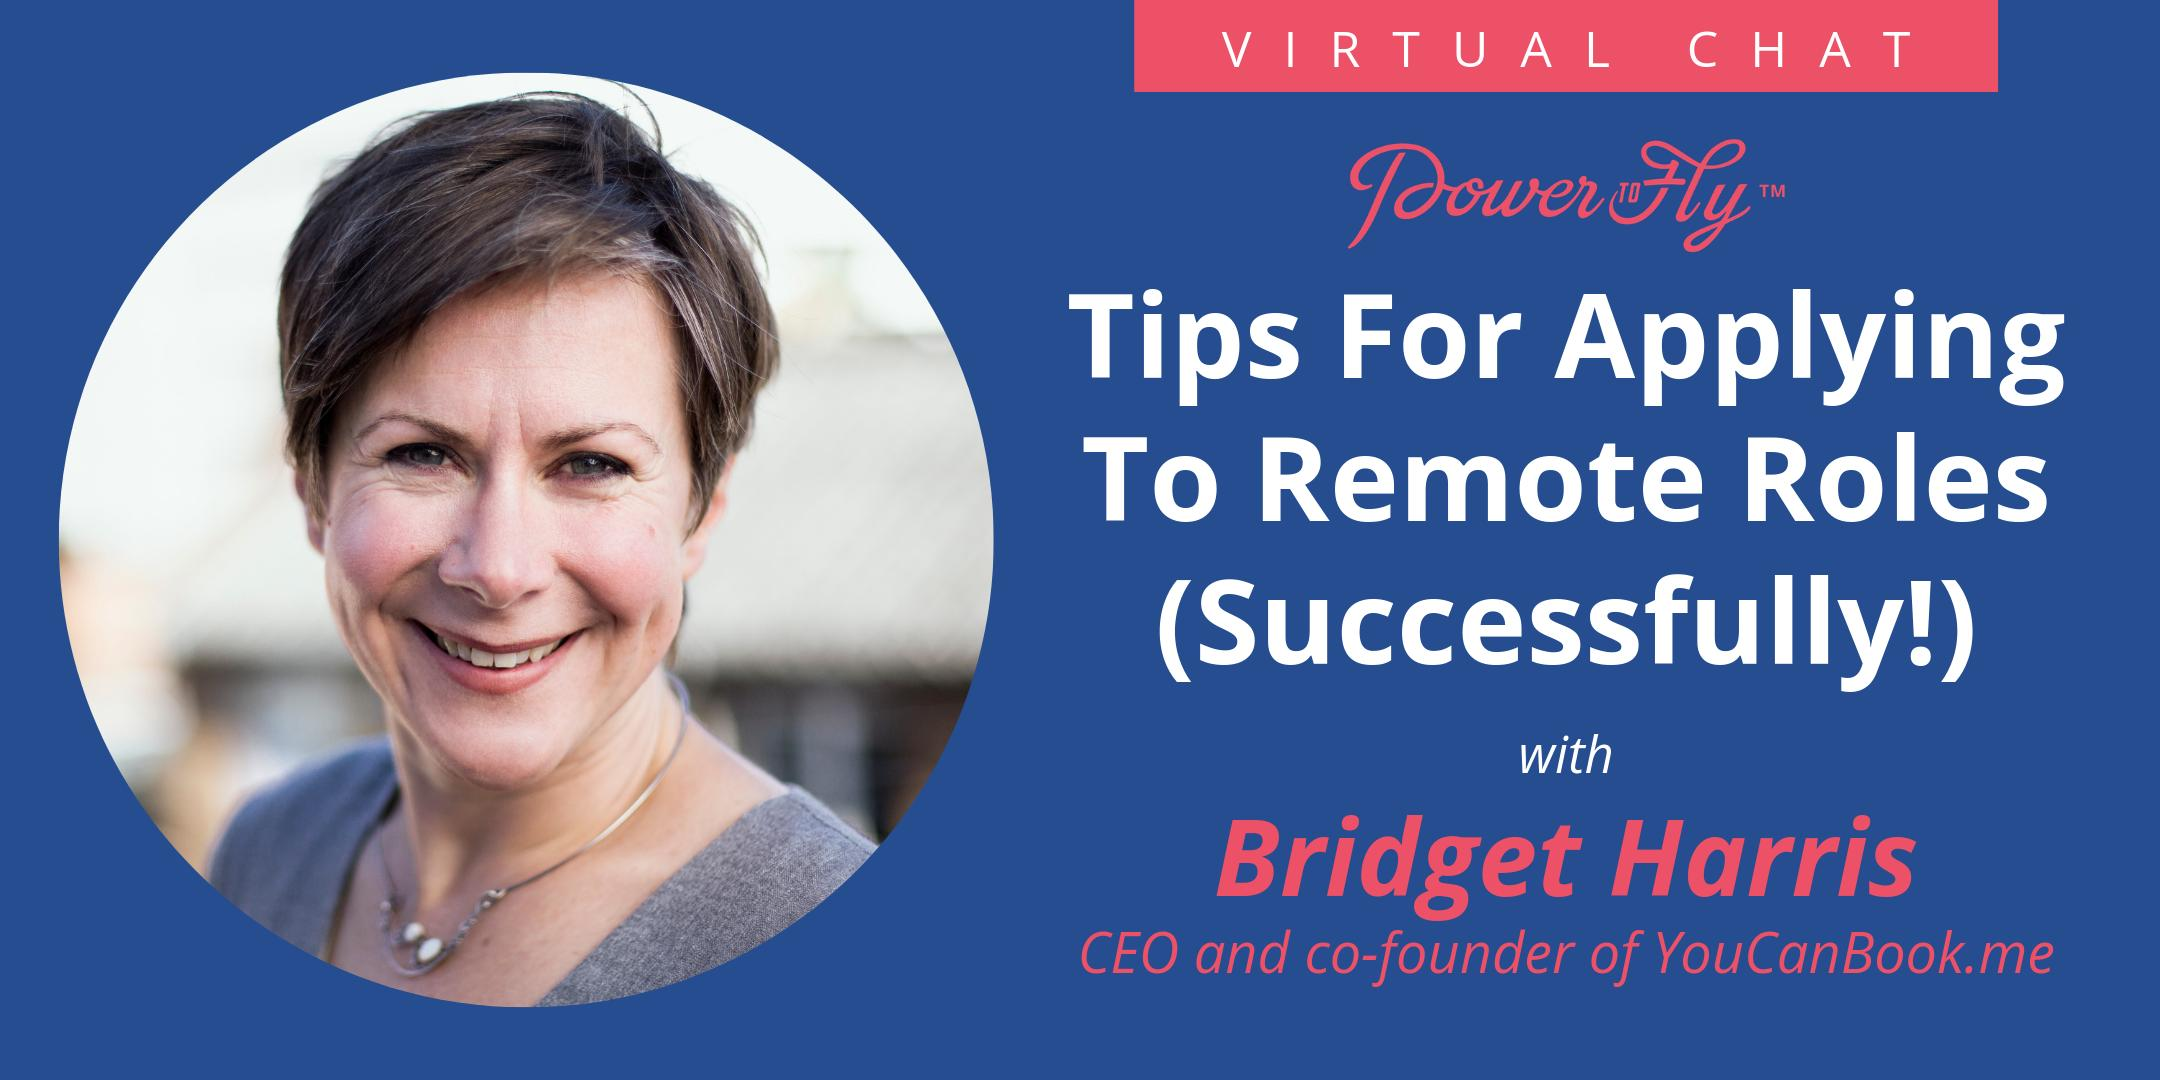 Tips For Applying To Remote Roles (Successfully!)